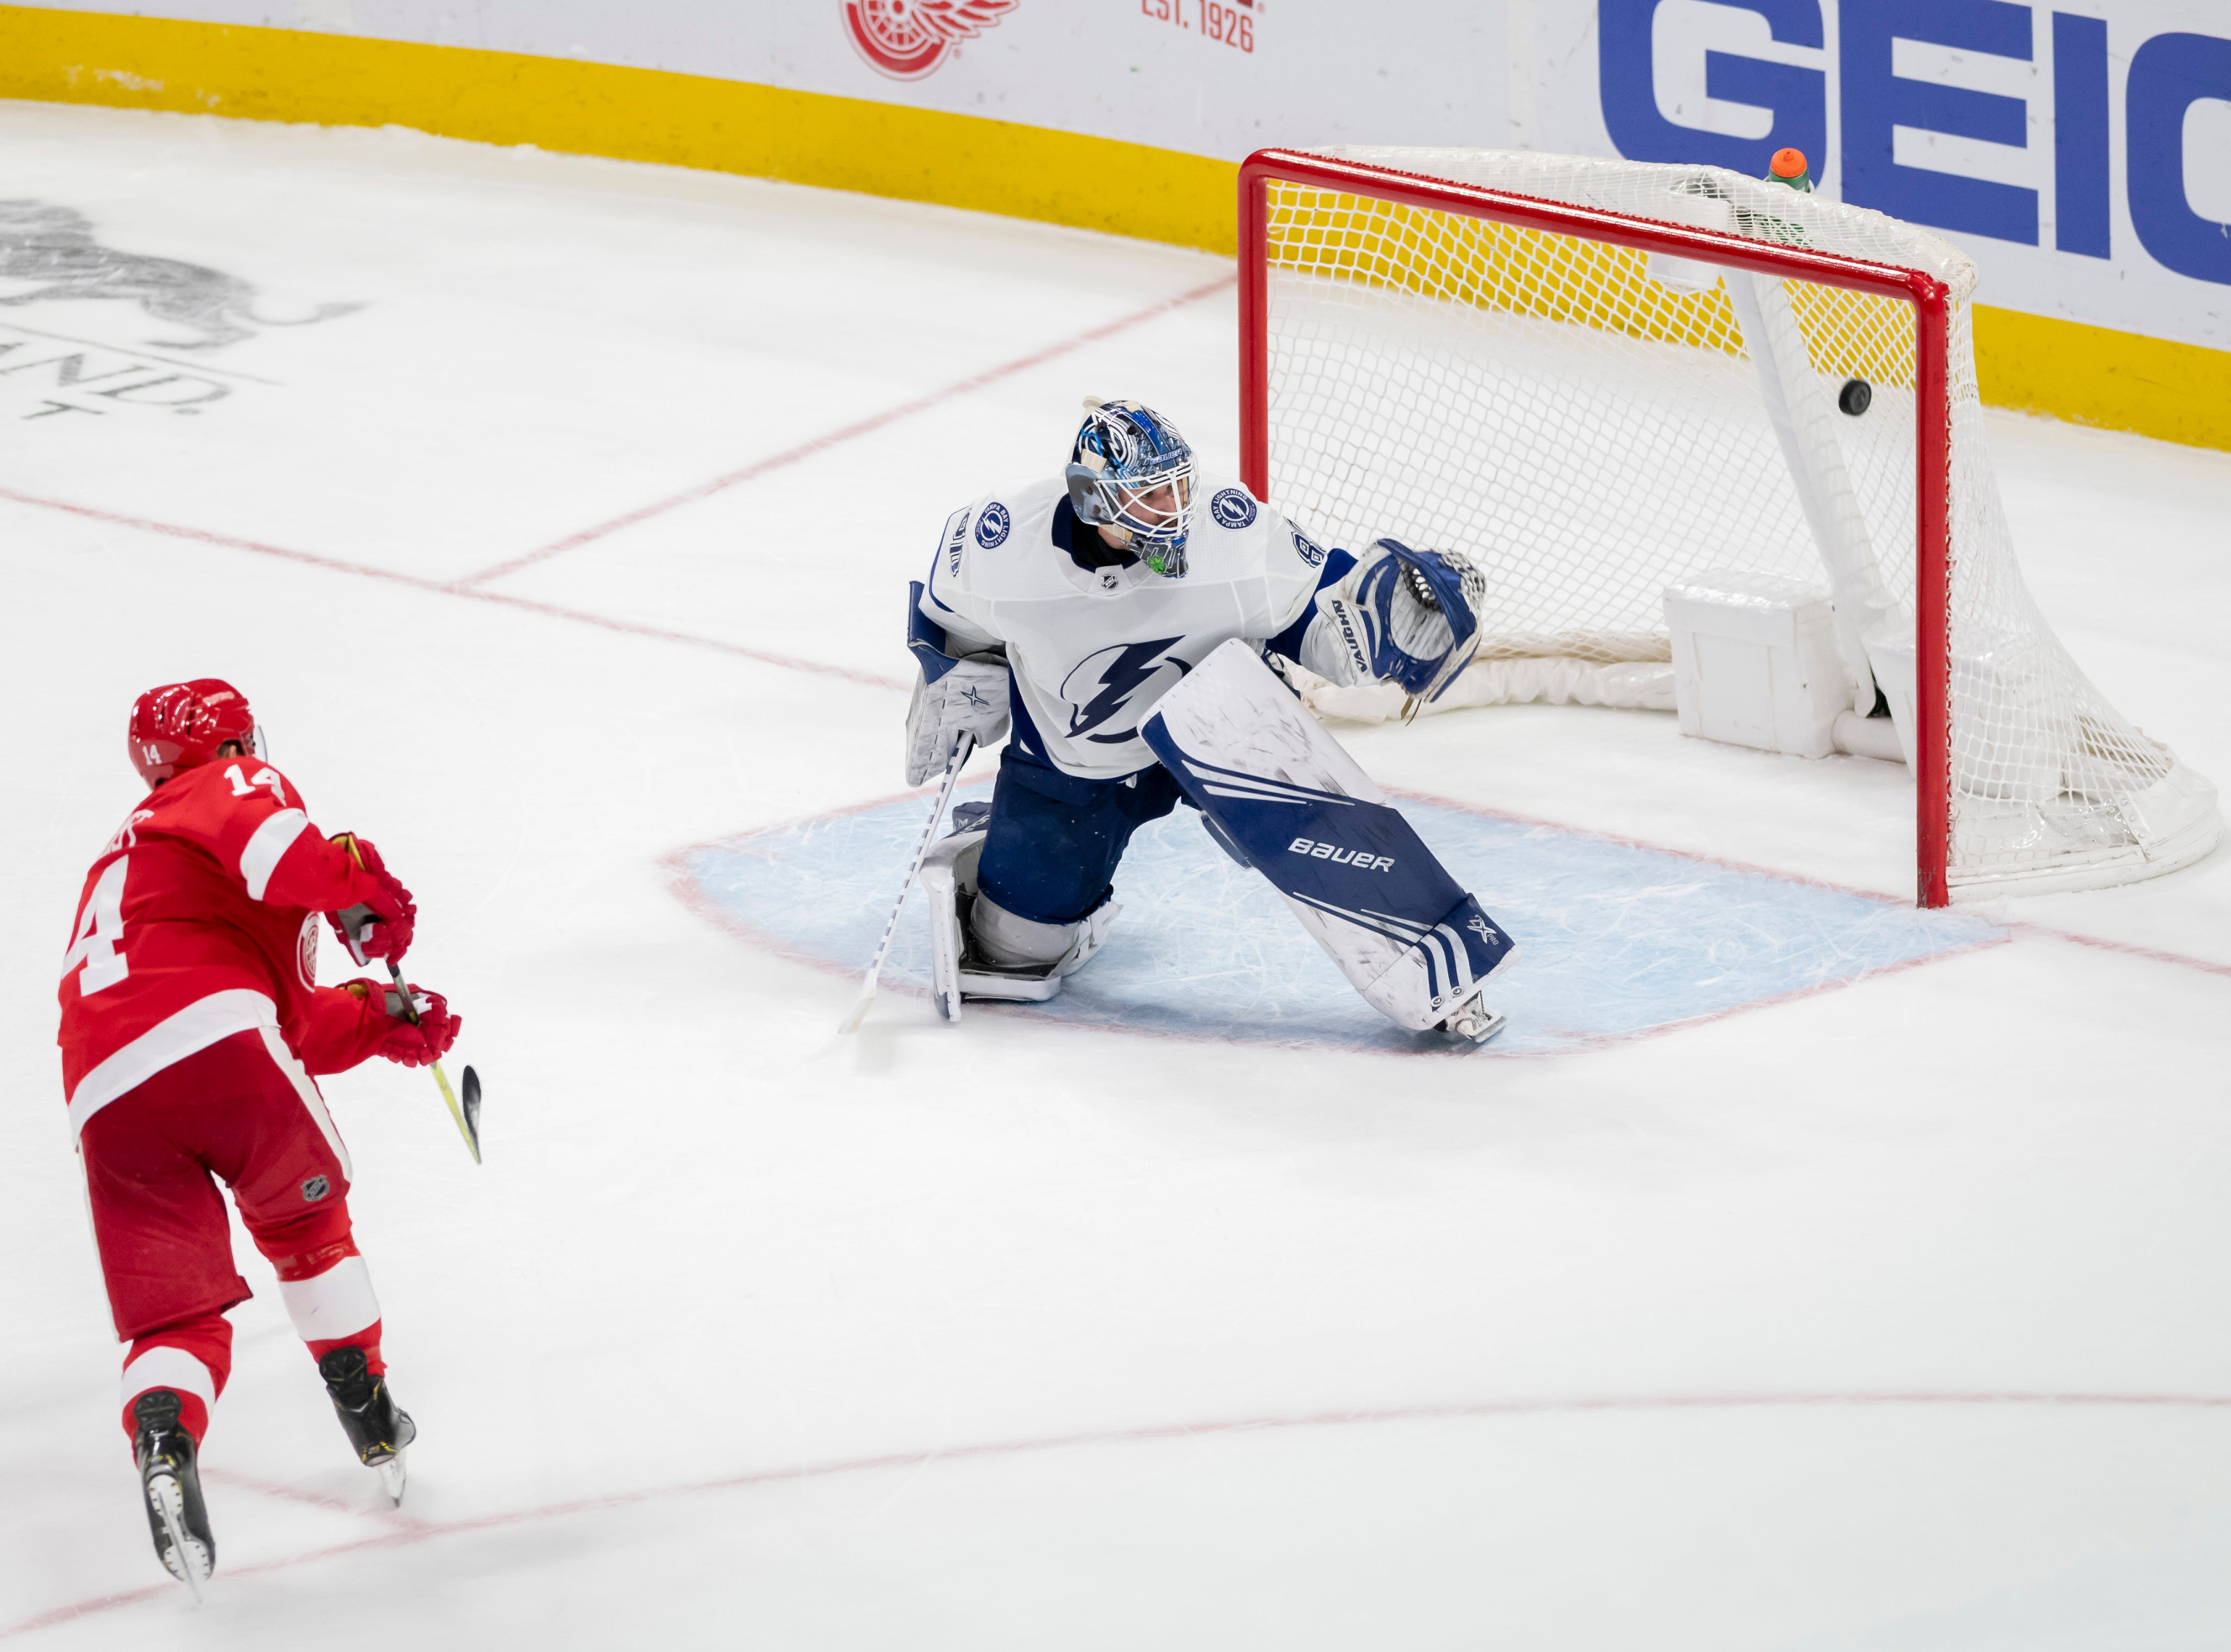 Detroit center Gustav Nyquist sends the puck past Tampa Bay goaltender Edward Pasquale for a goal during the shoot out.